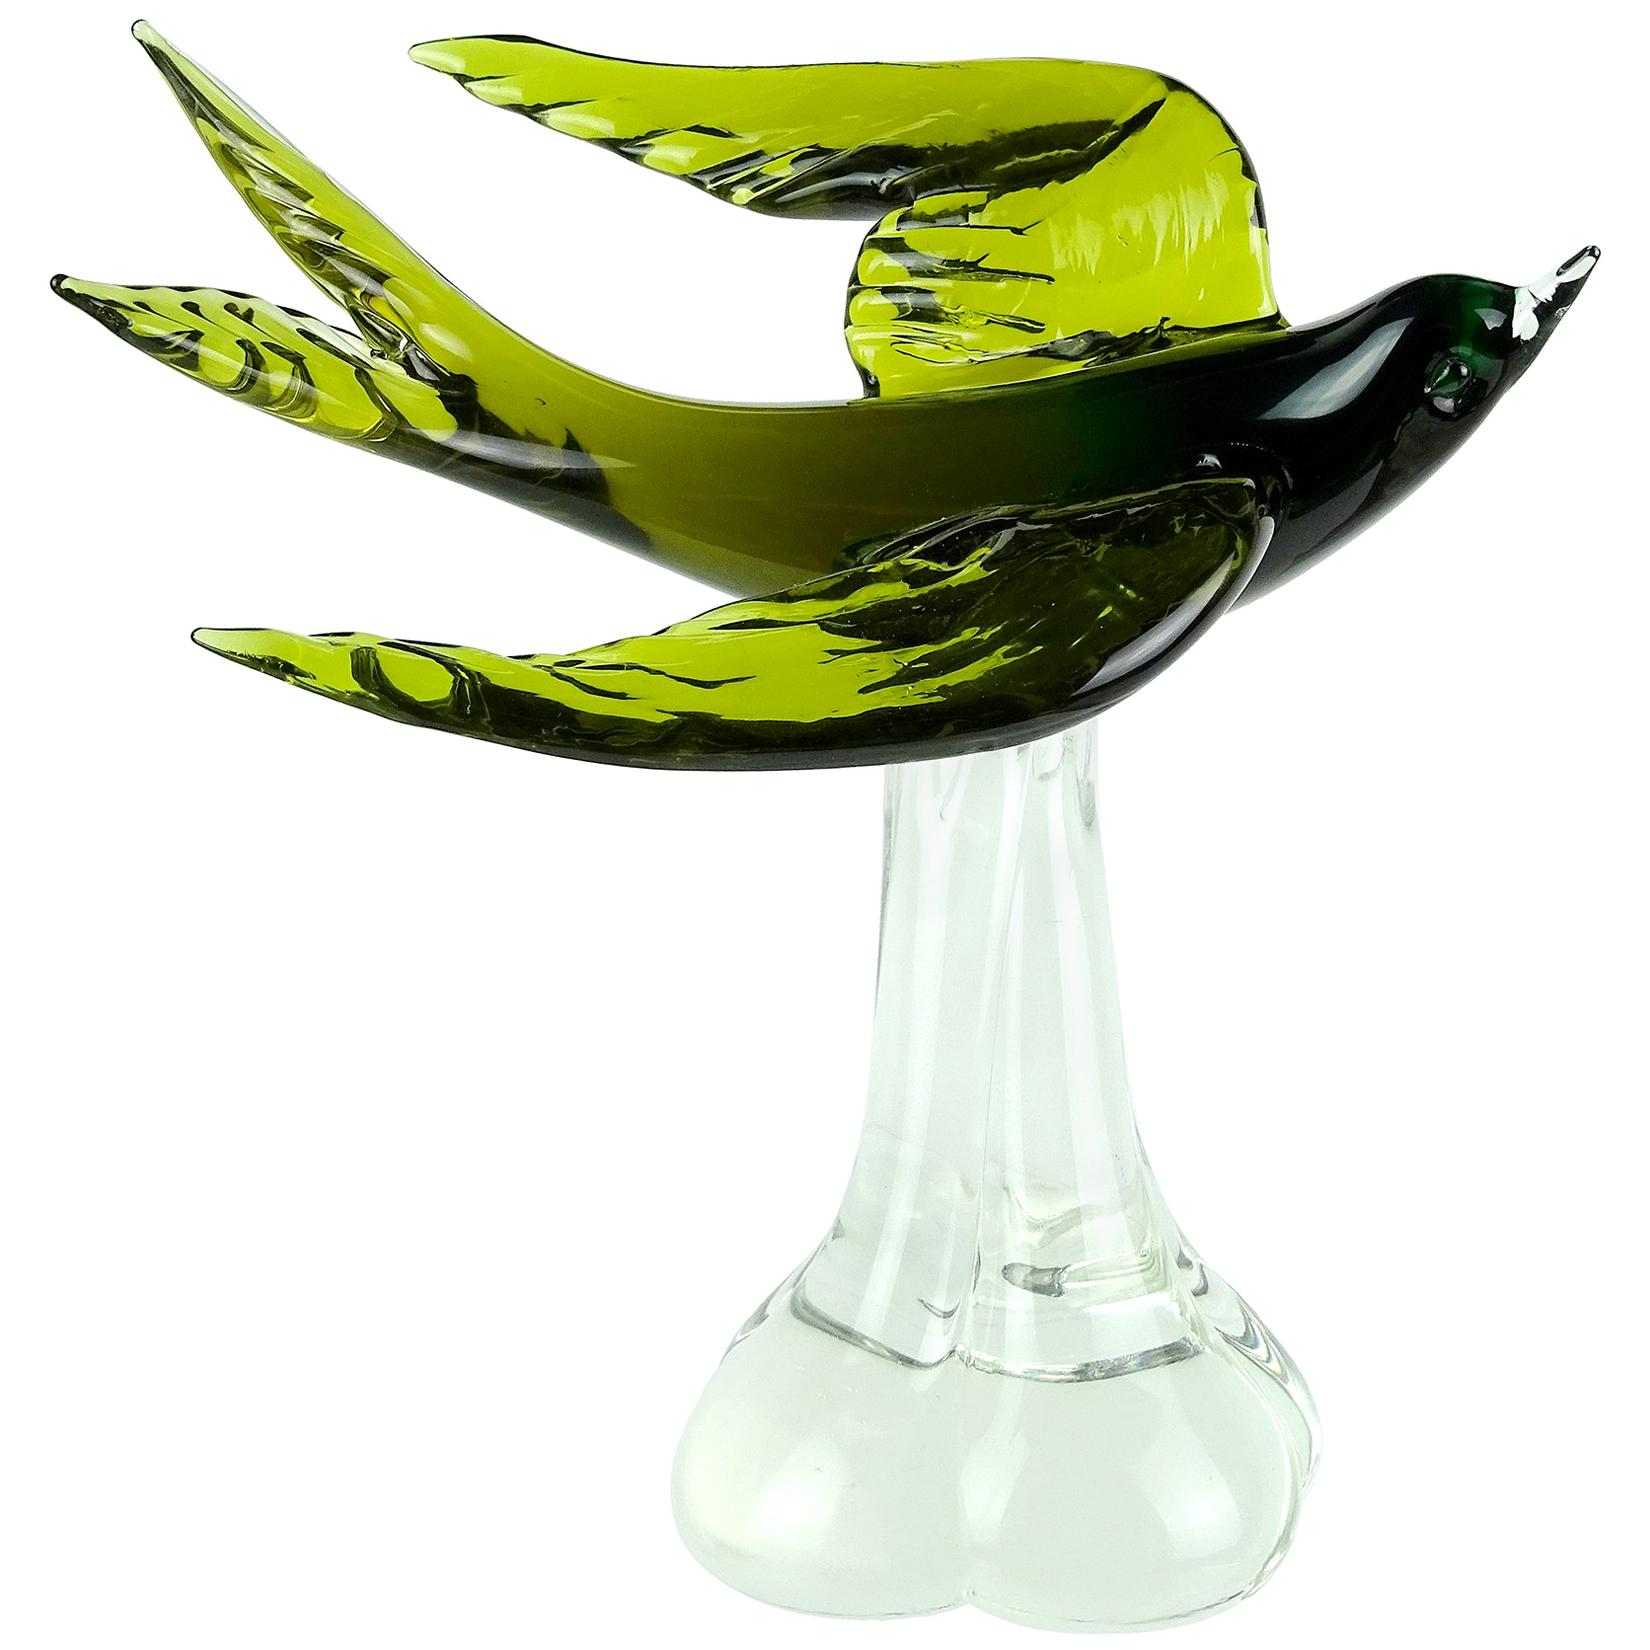 Murano Sommerso Green Italian Art Glass Flying Swallow Bird Sculpture on Base